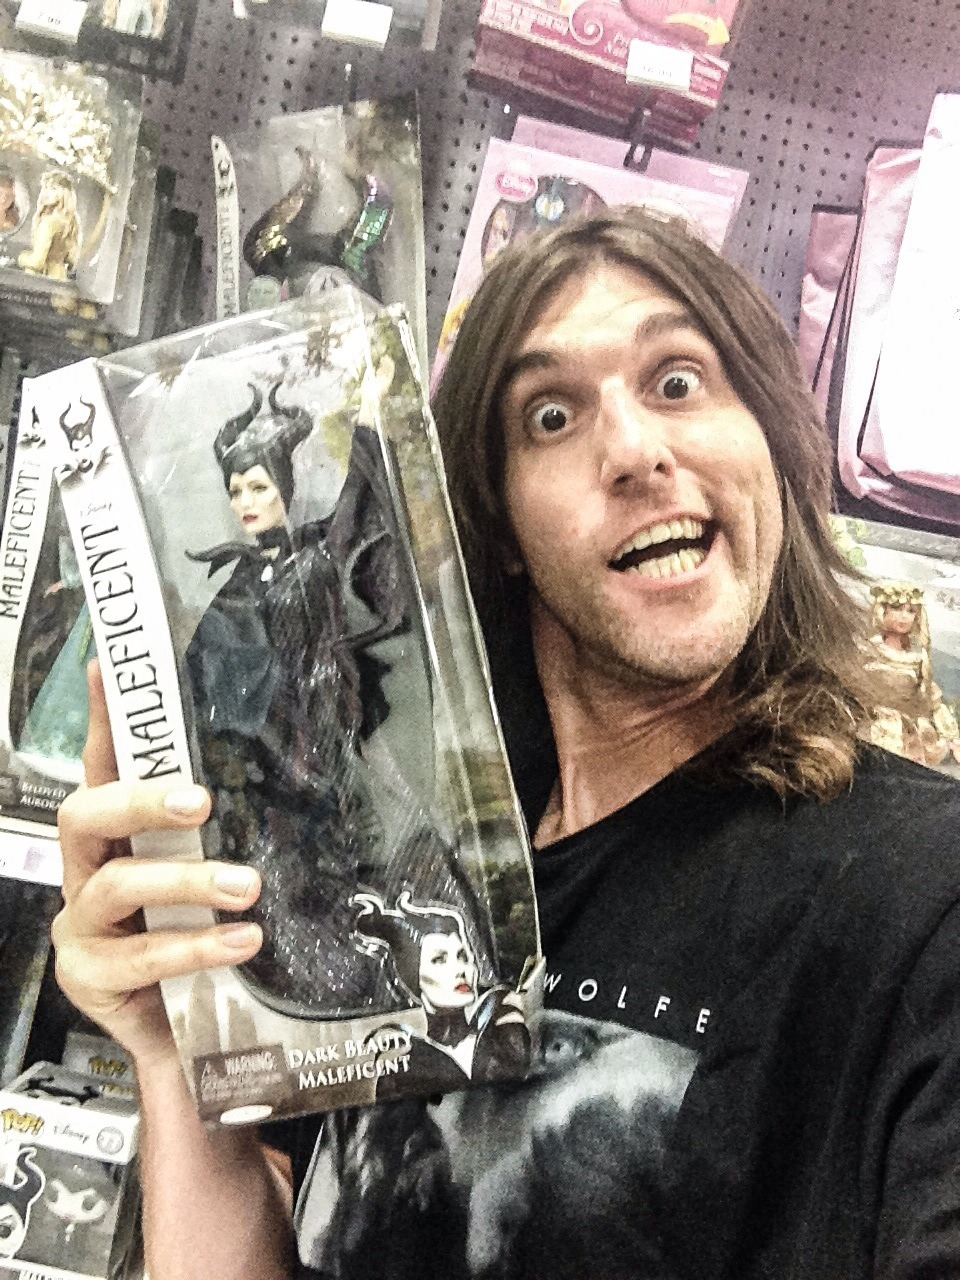 So sorry Southern California, but I've already bought out ALL of So Cal's supply of Disney's Angelina Jolie Maleficent merchandise figures….movie comes out May 30!! haha :) #maleficentsuperfan